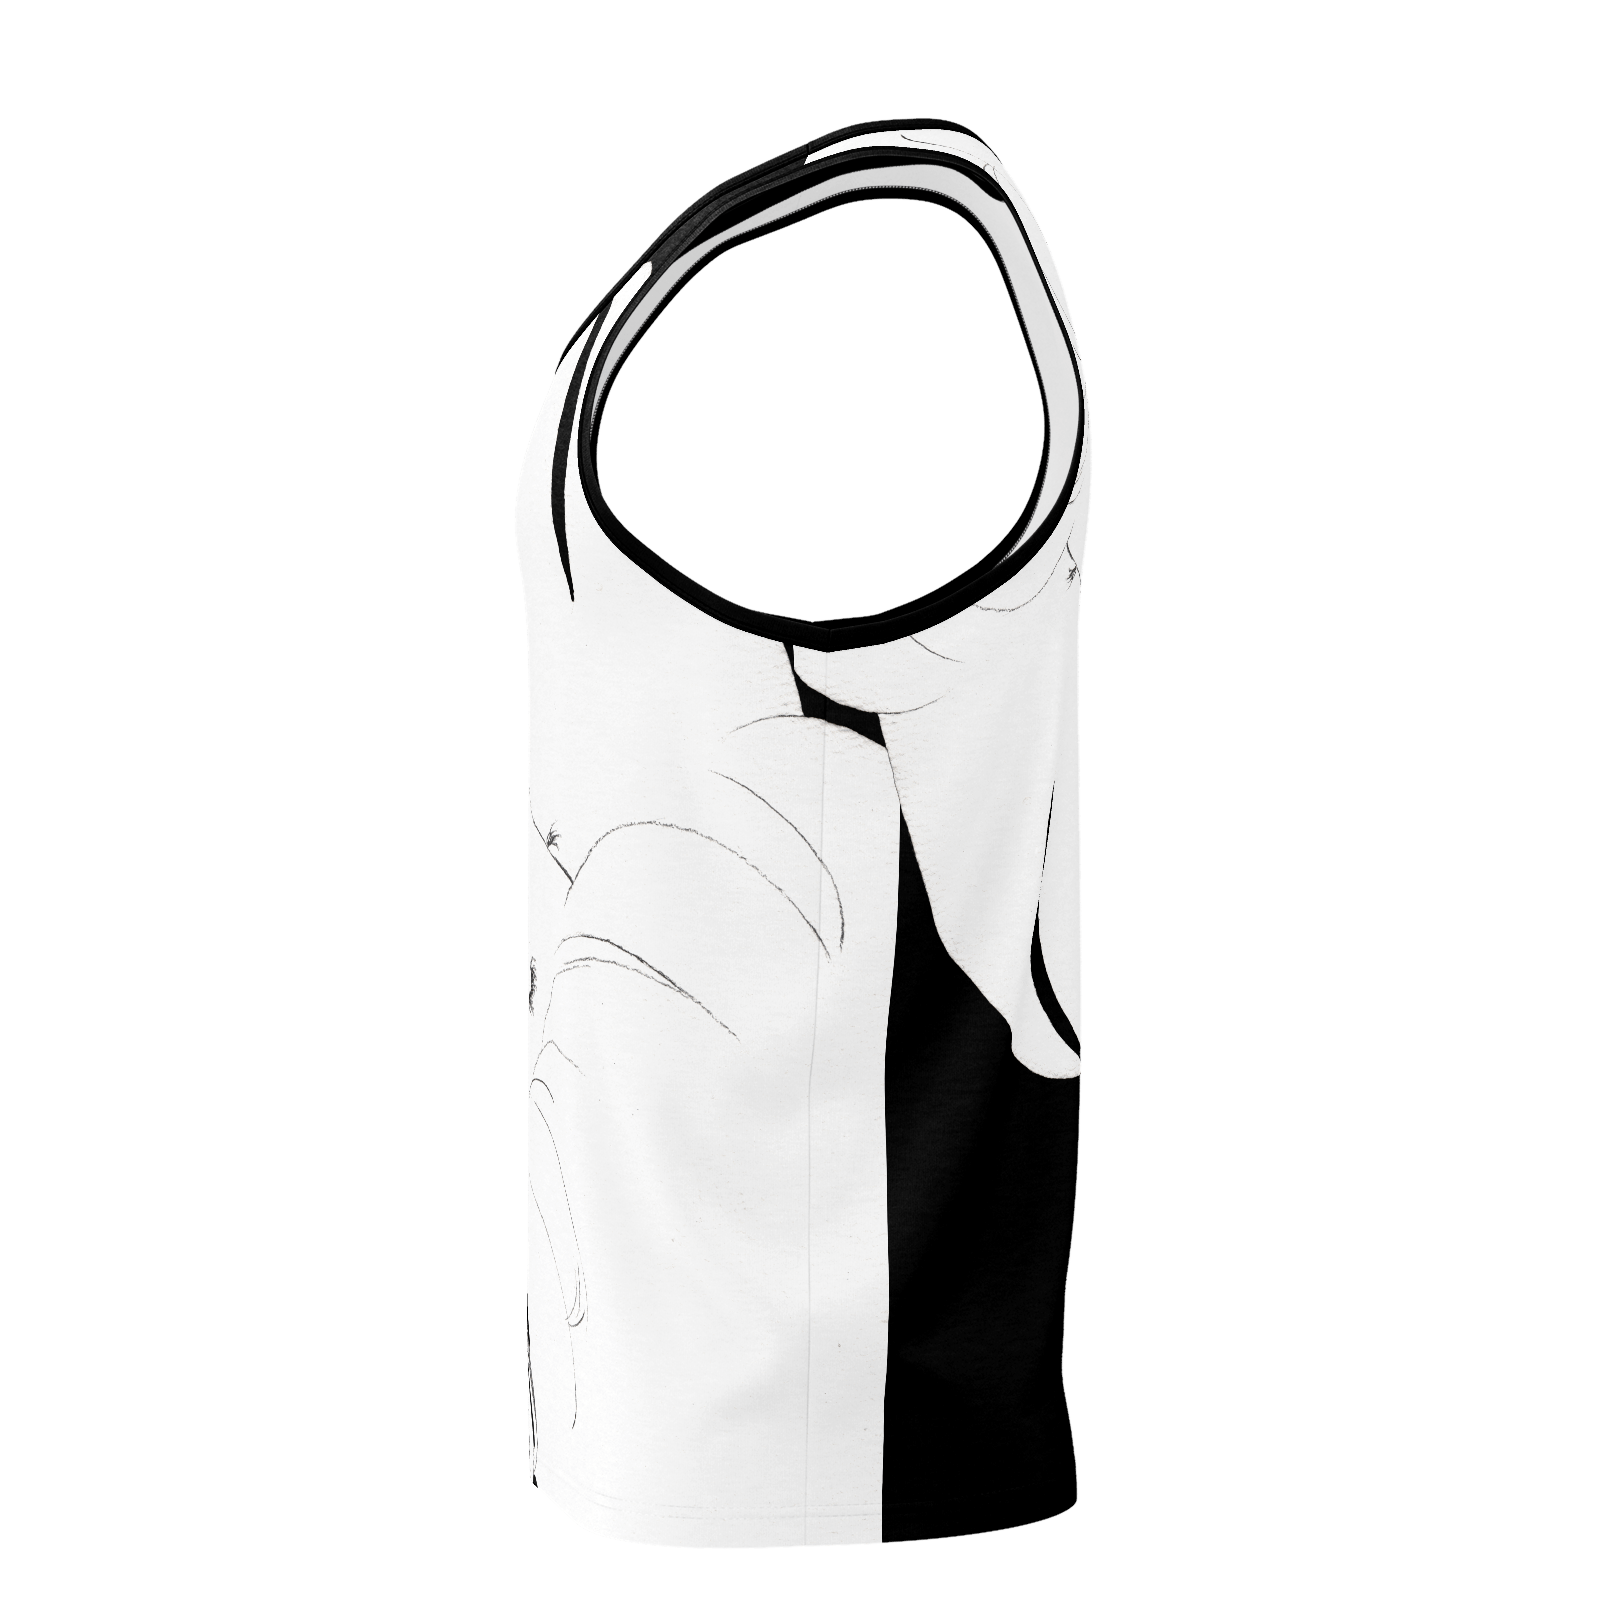 Paranoia Girls - 2 sided tank top - Larissa Loses - Black - Poly 2019